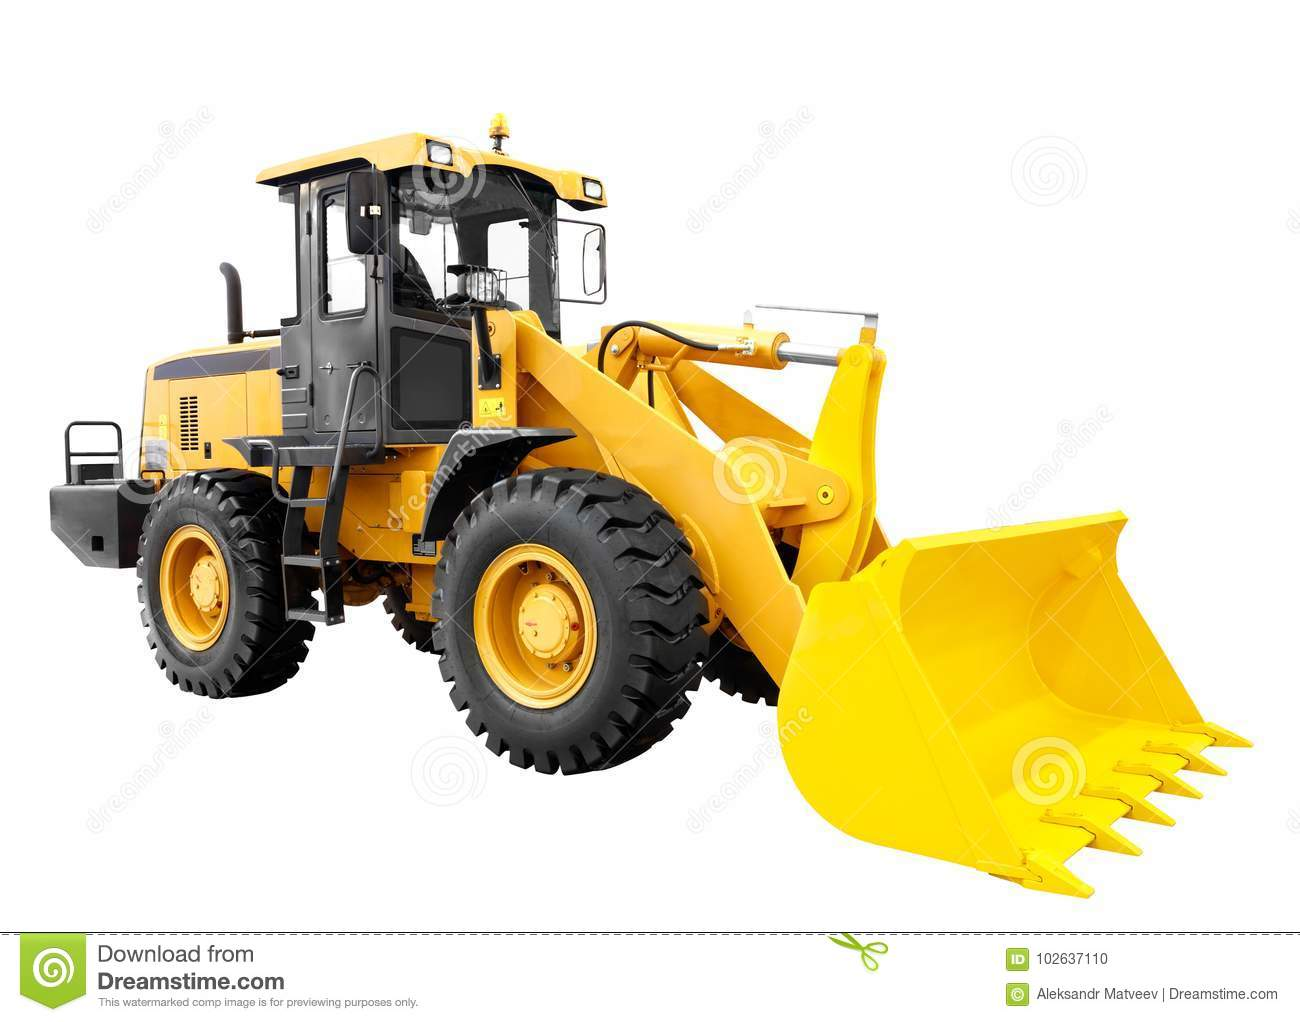 Download Modern Yellow Loader Bulldozer Excavator Construction Machinery Equipment Isolated On White Background Stock Photo